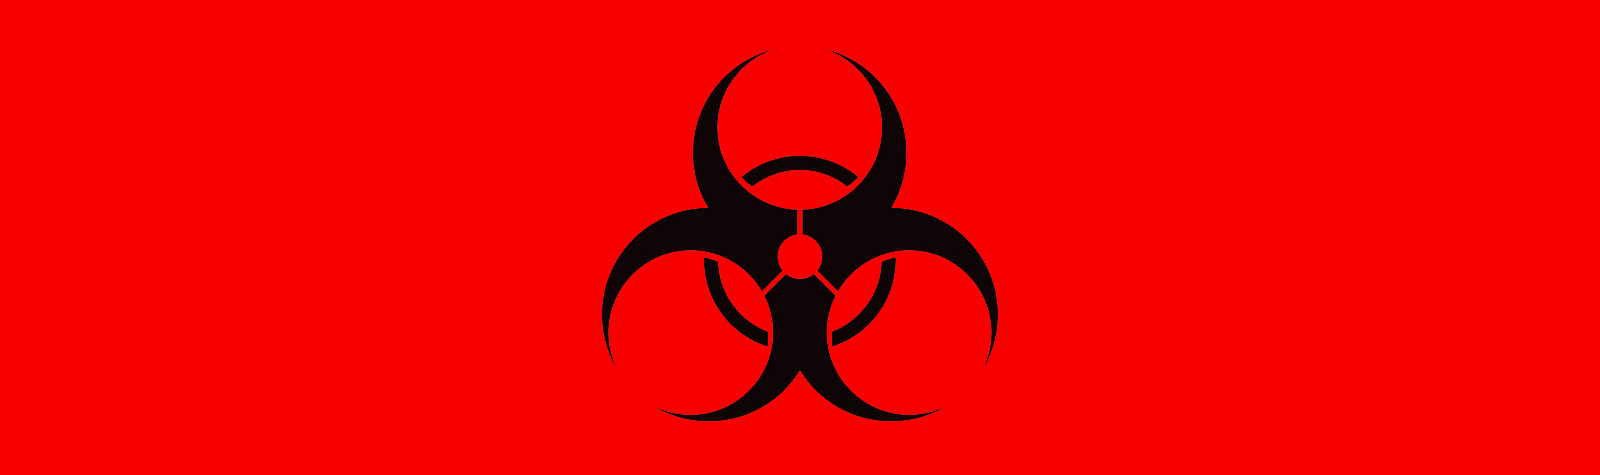 Top 5 virus themed film posters